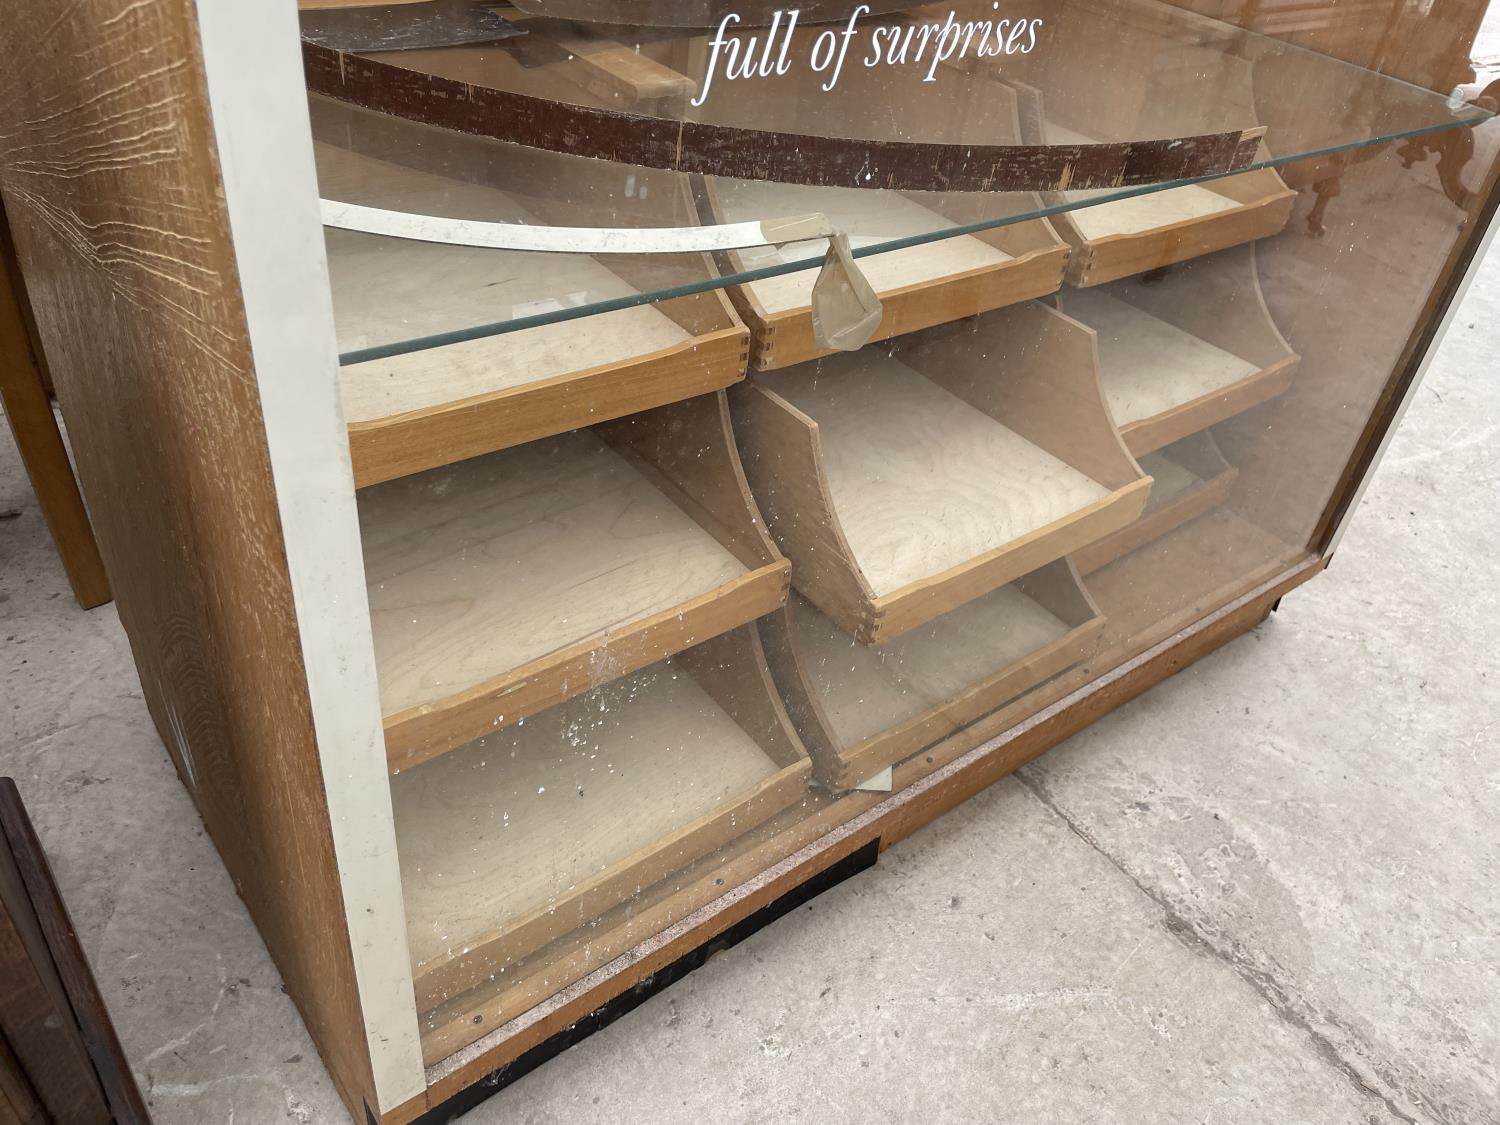 """A 1970'S HABERDASHERS CABINET WITH NINE DRAWERS AND TWO DROP-DOWN DOORS, 46.5"""" WIDE - Image 3 of 5"""